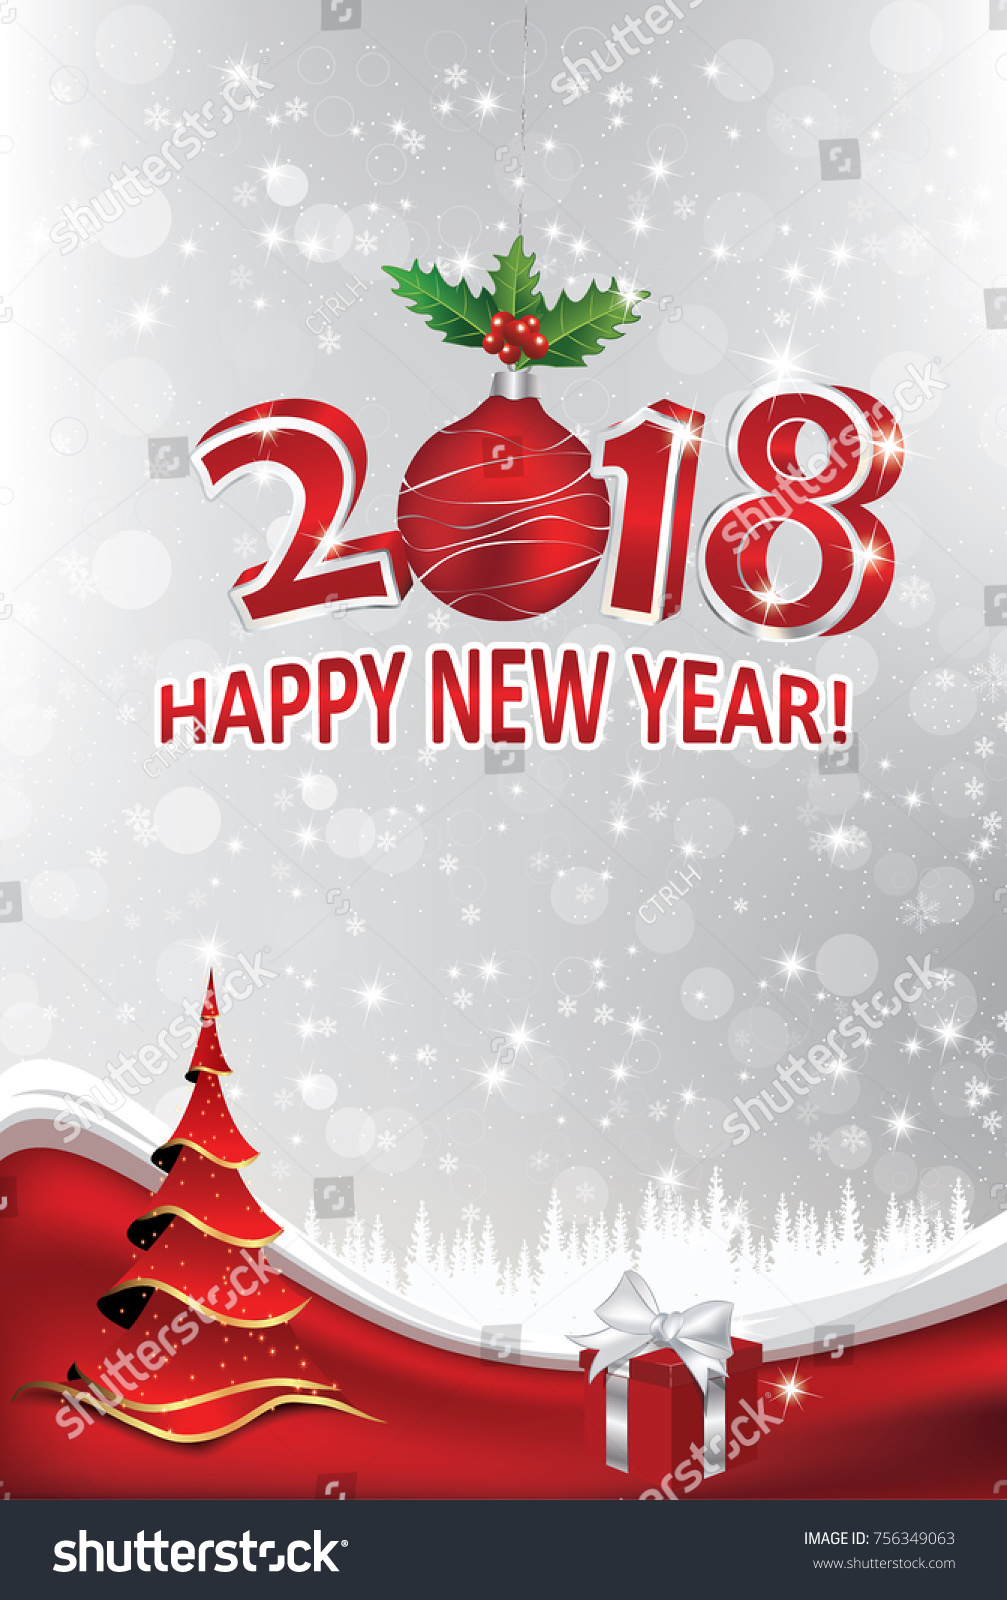 Happy New Year 2018 Greeting Card Stock Illustration 756349063 ...